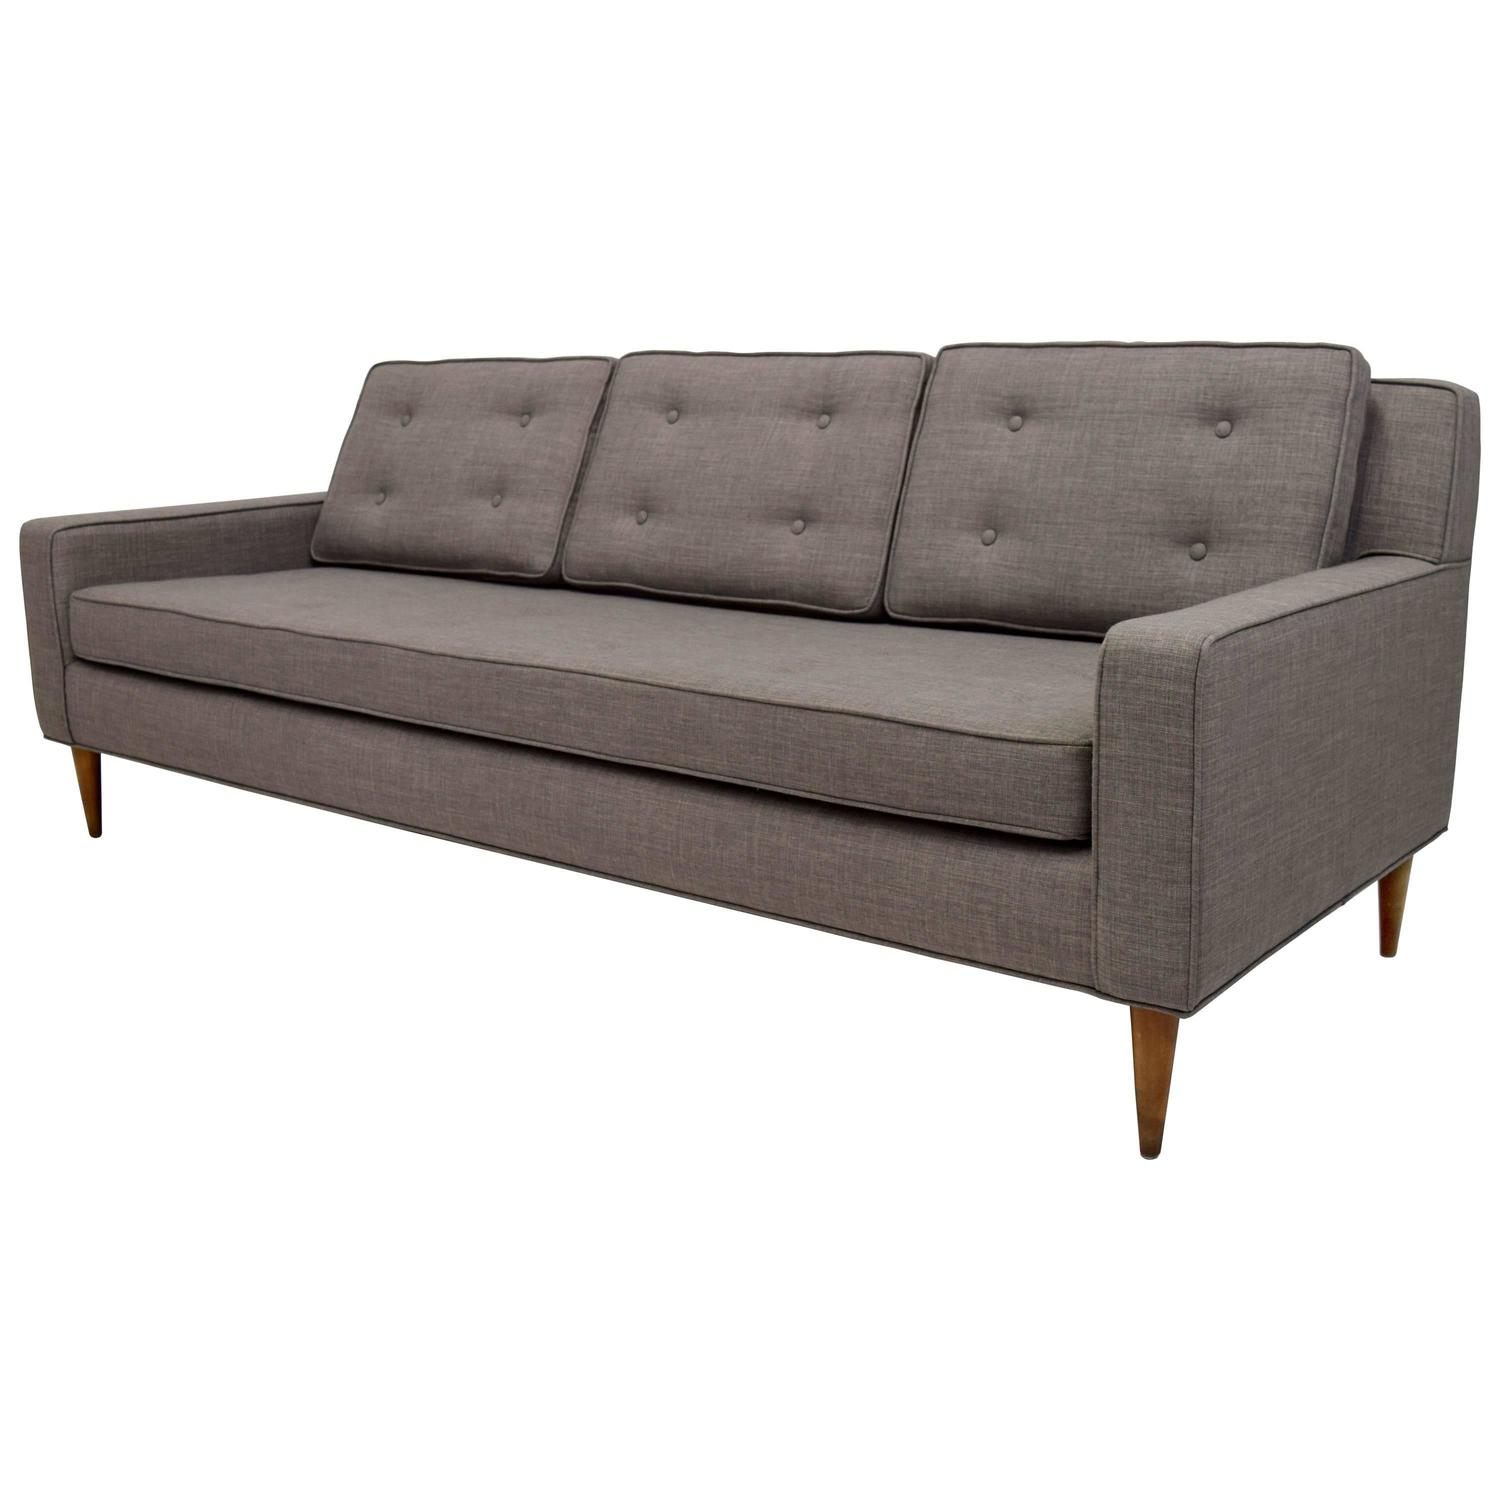 Mid century button tufted sofa in paul mccobb style for for Tufted couches for sale